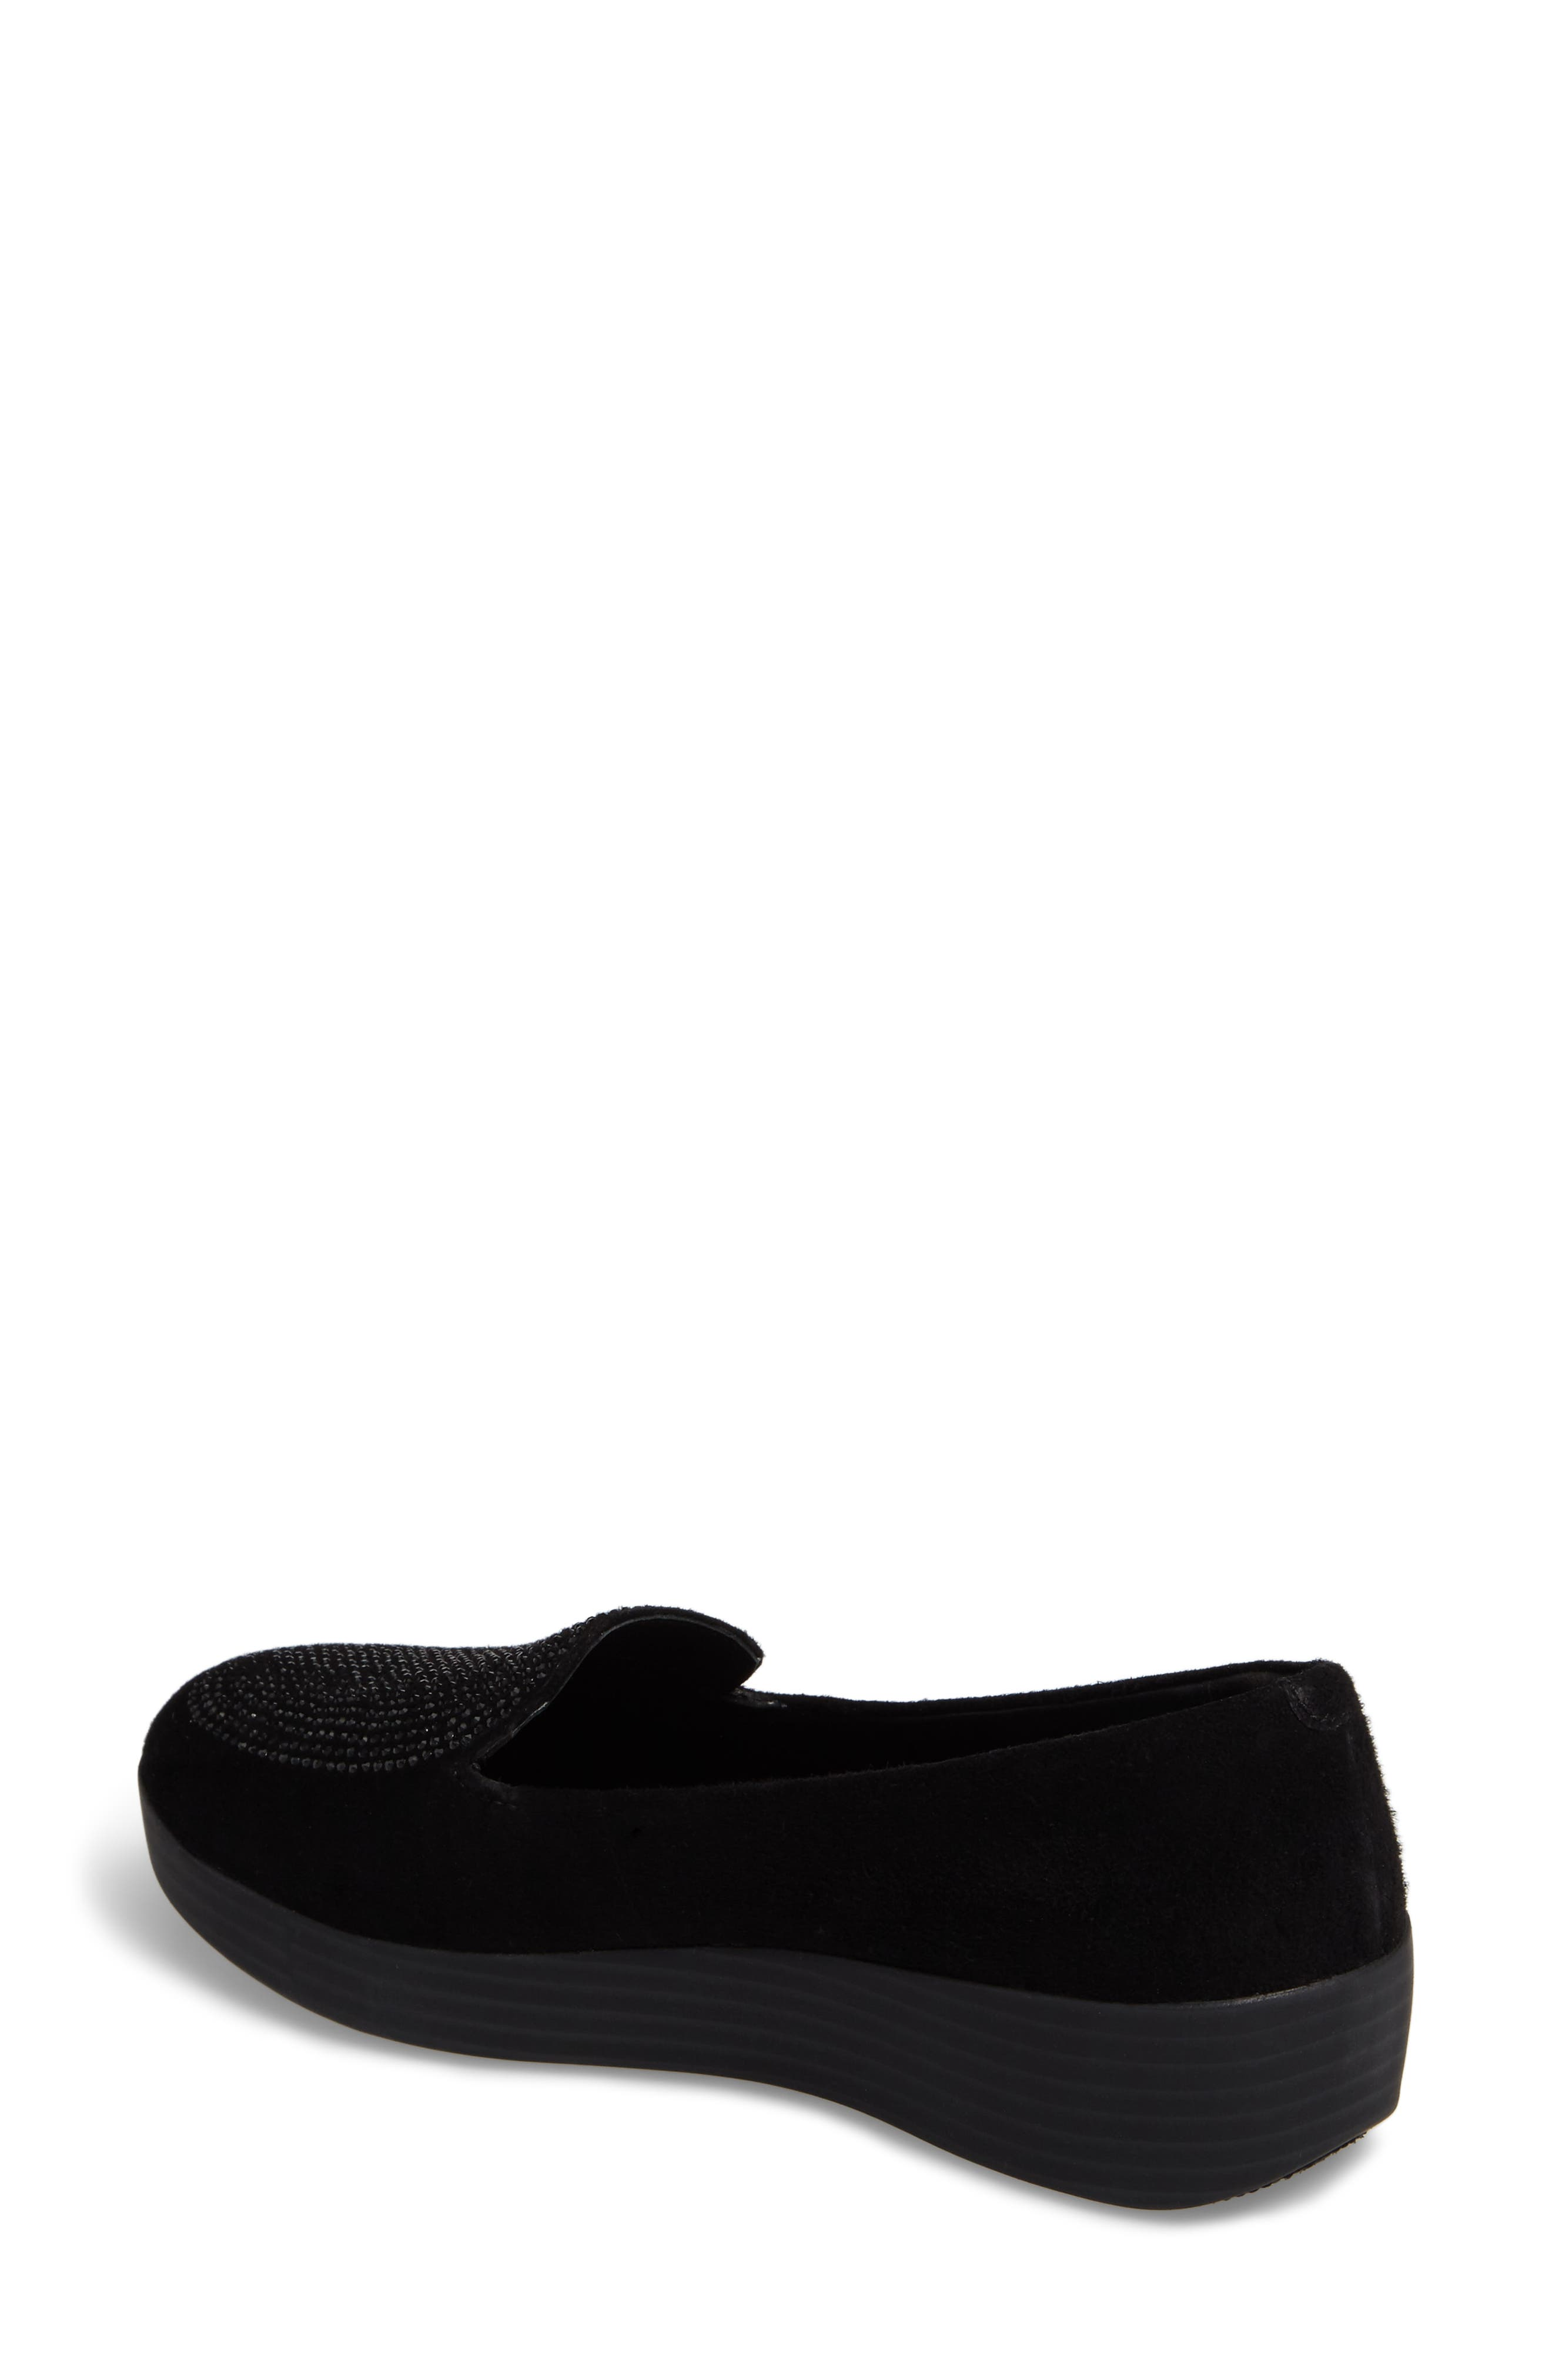 Alternate Image 2  - FitFlop Sparkly Sneakerloafer Slip-On (Women)